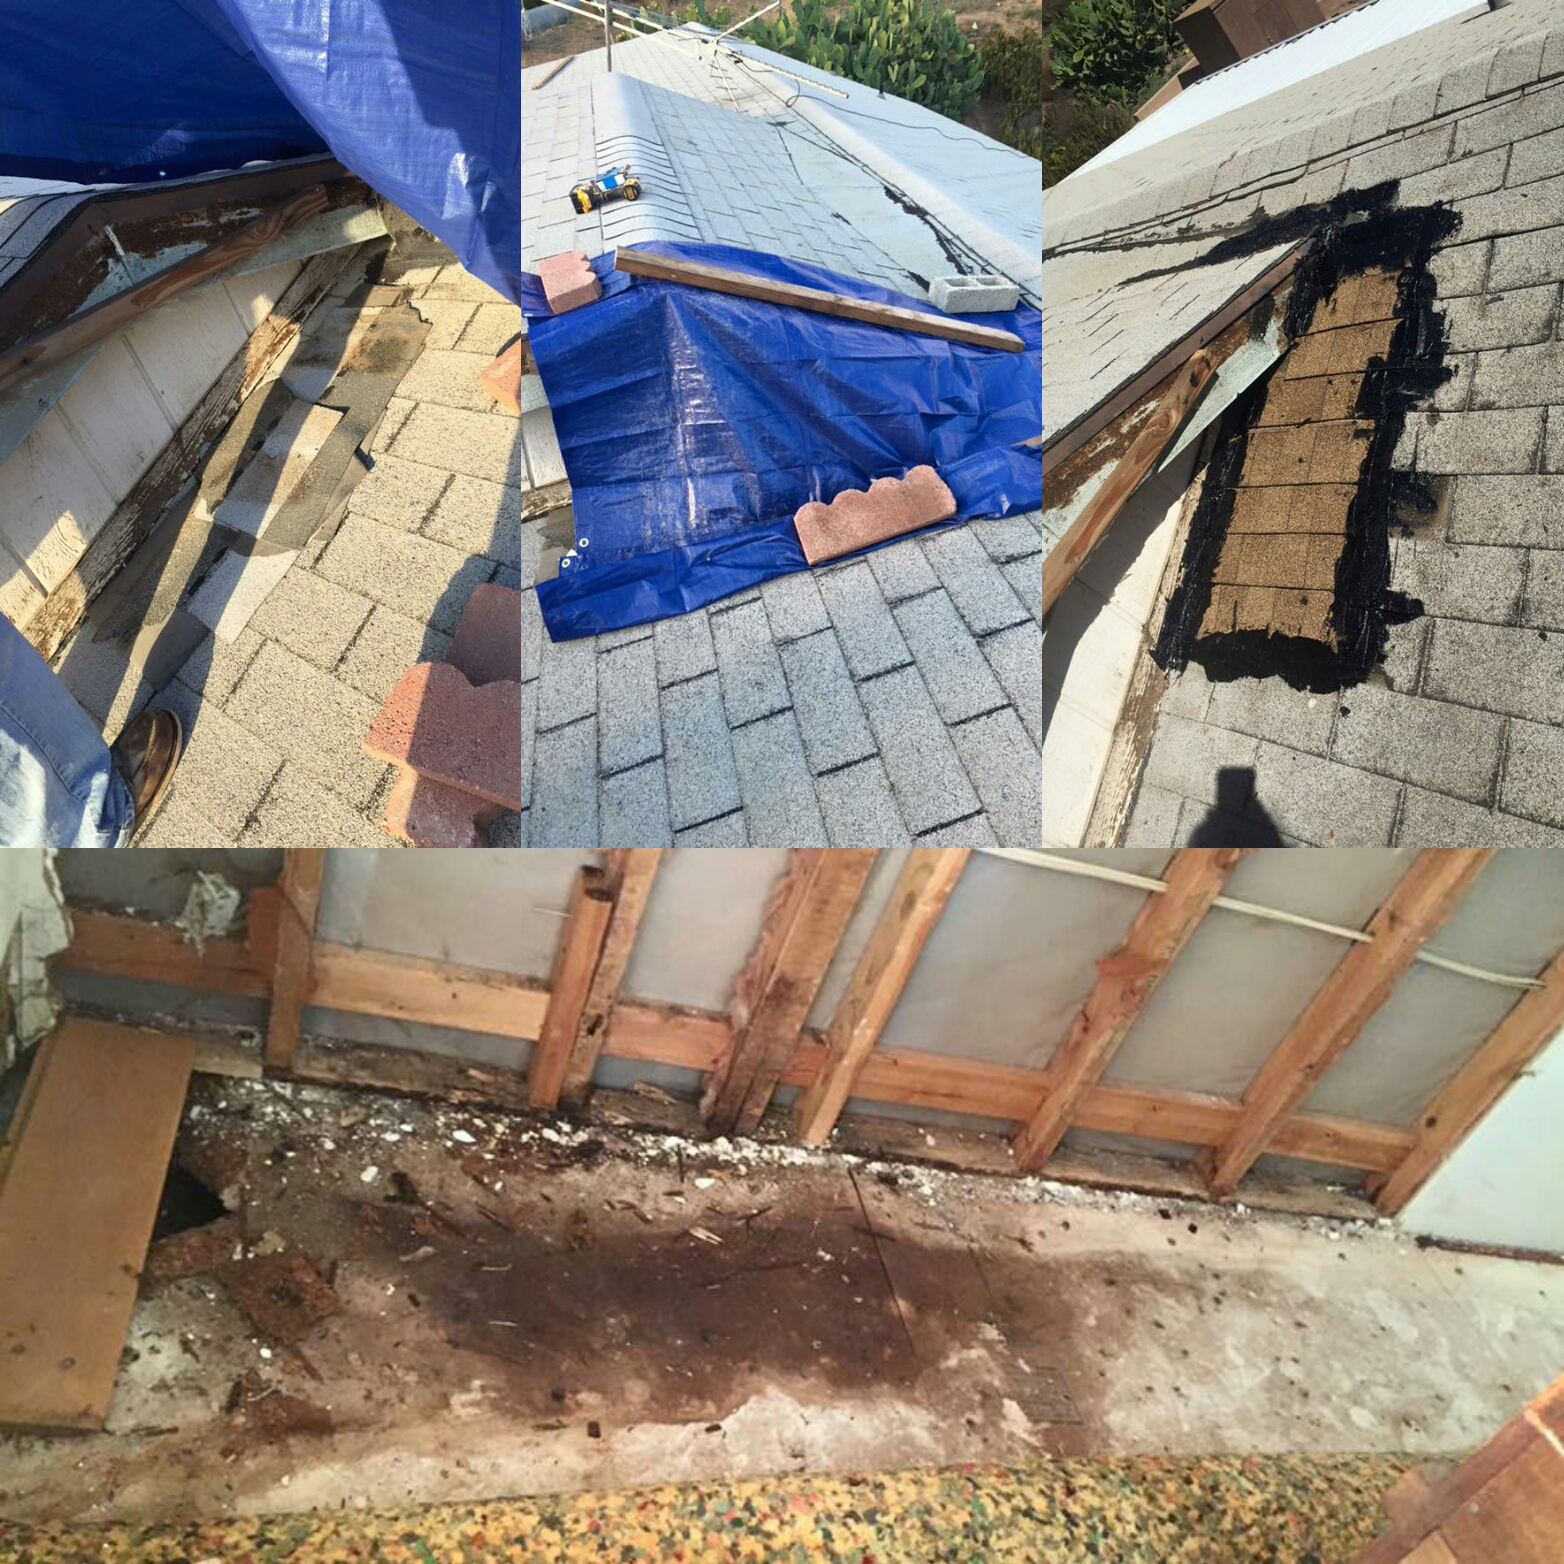 Leaky Roof Water Damage: Community Comes Together To Repair Rain Damaged Home